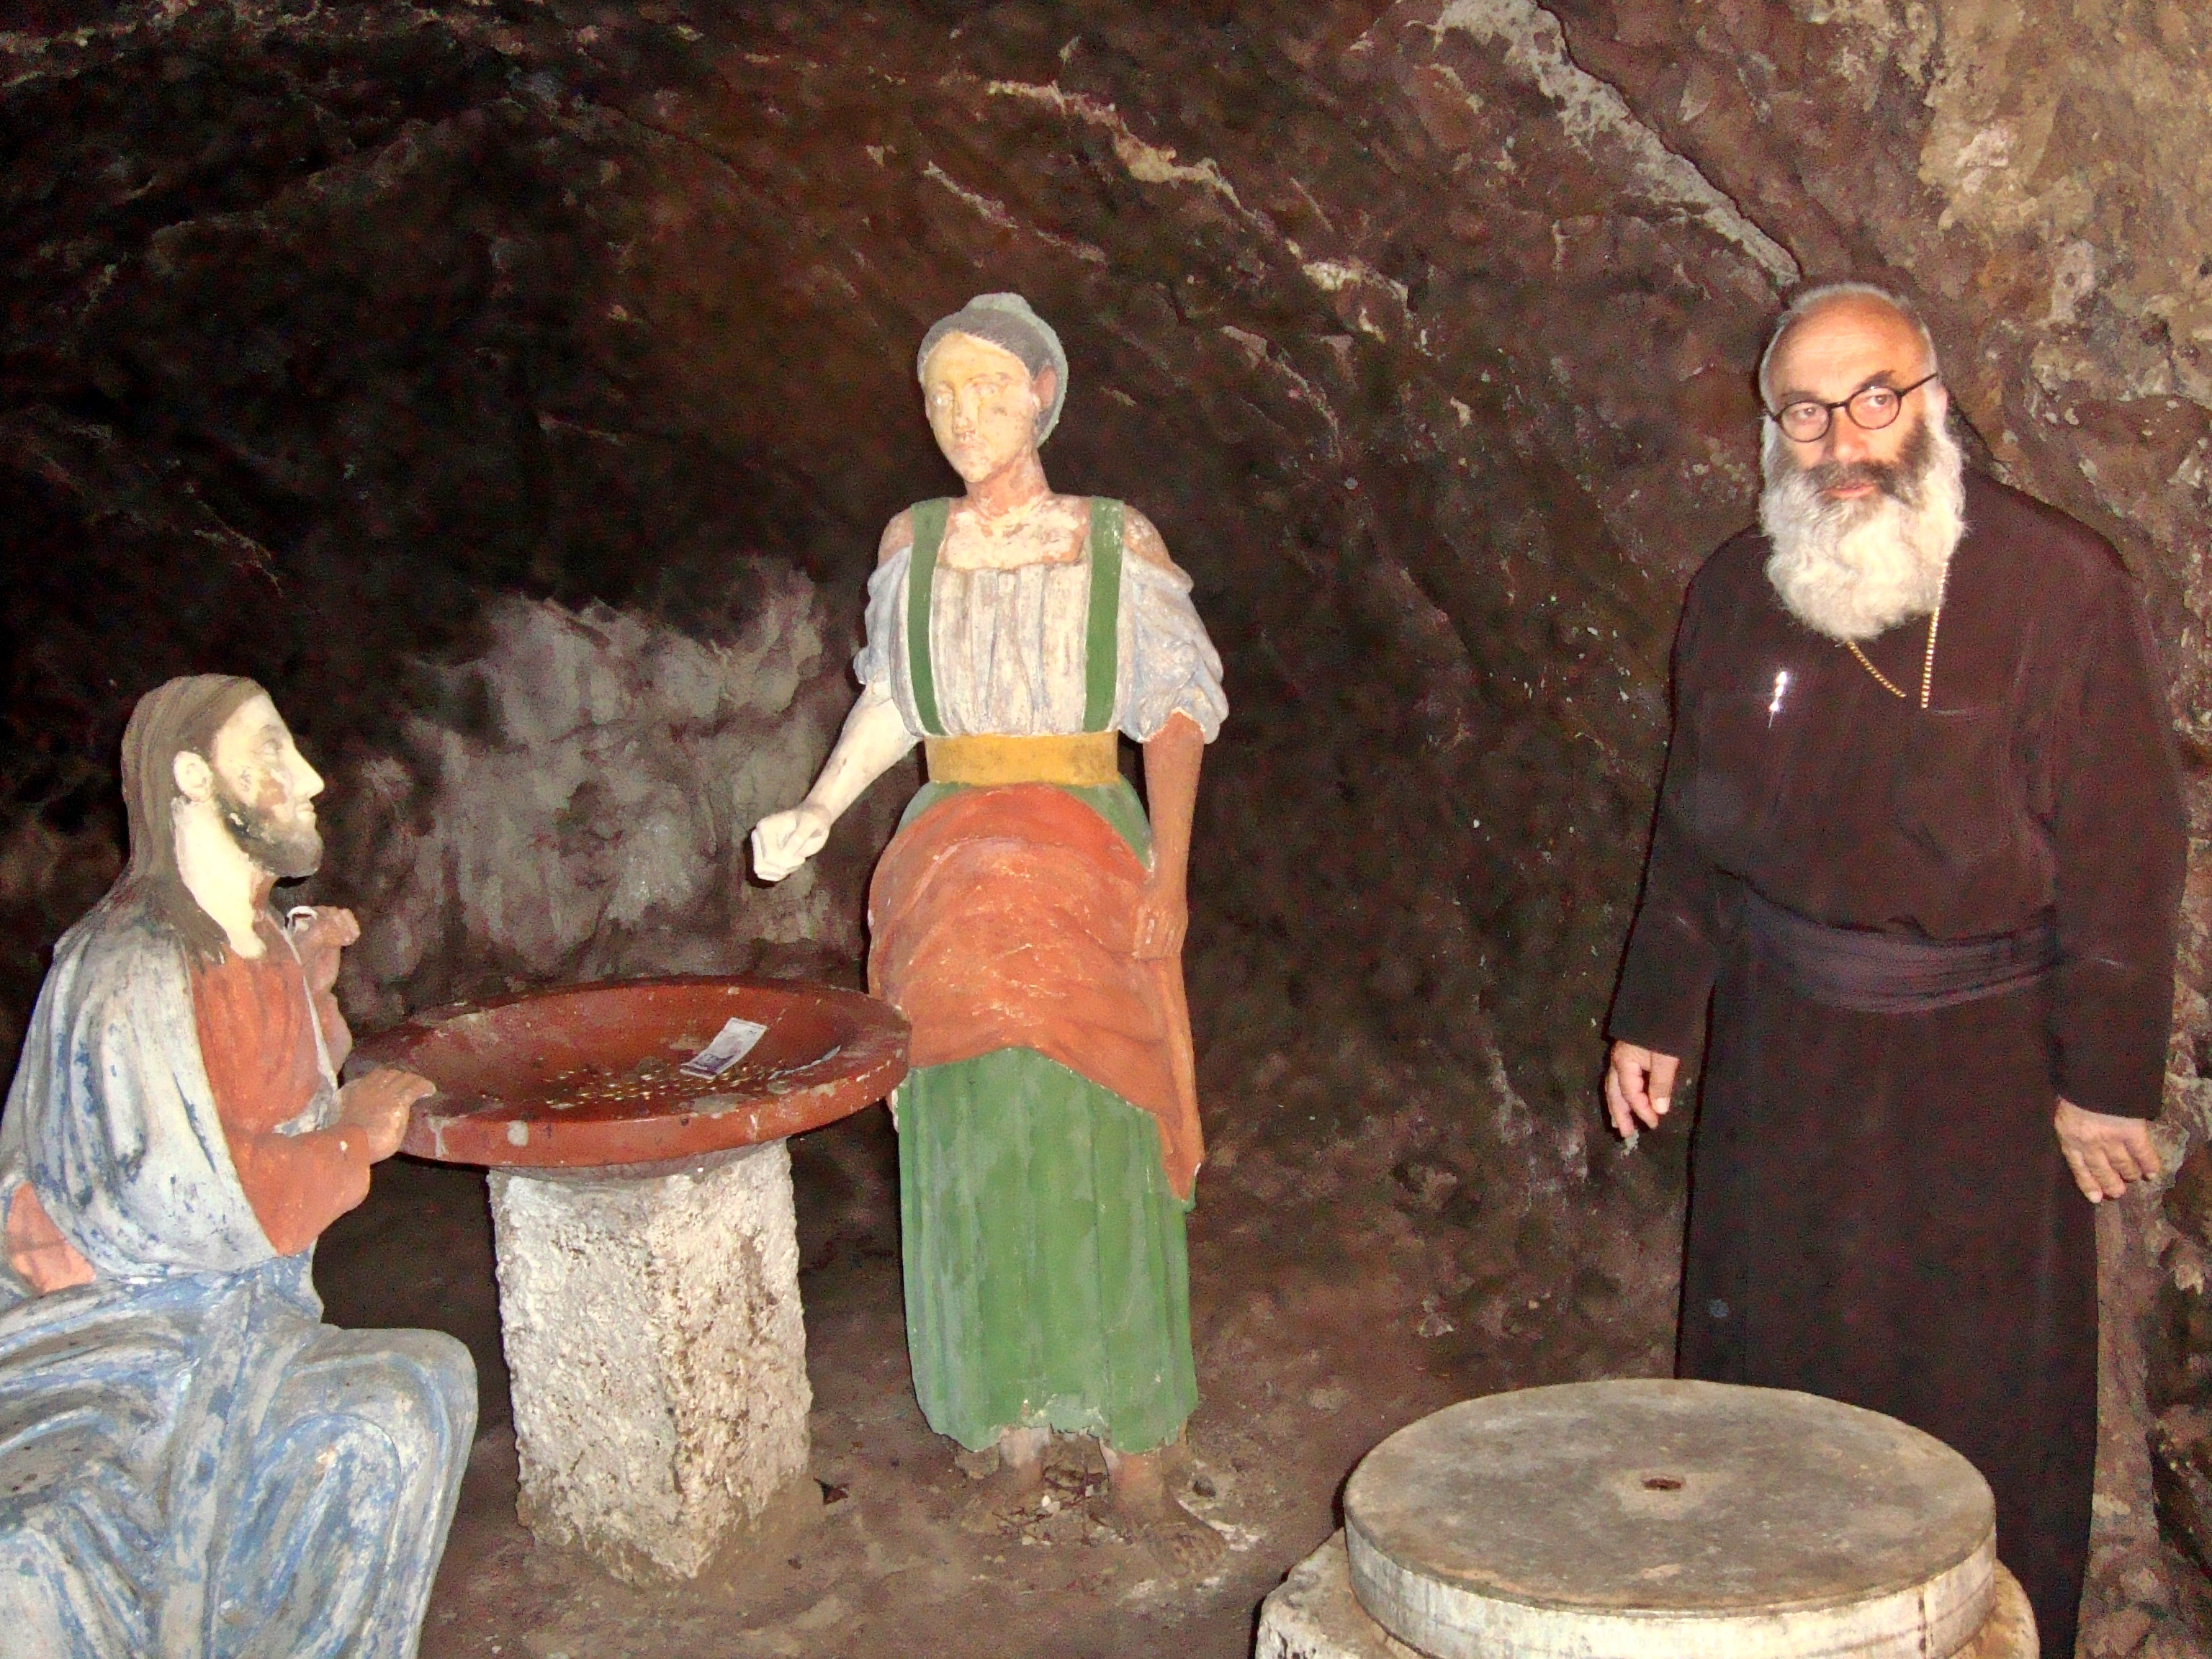 The_Well-of-the-Samaritan-Holy-Spring-near-Bakadjishki-monastery-Holy-Savior-Bulgaria-Abbot-Hieromonk-Sofronij